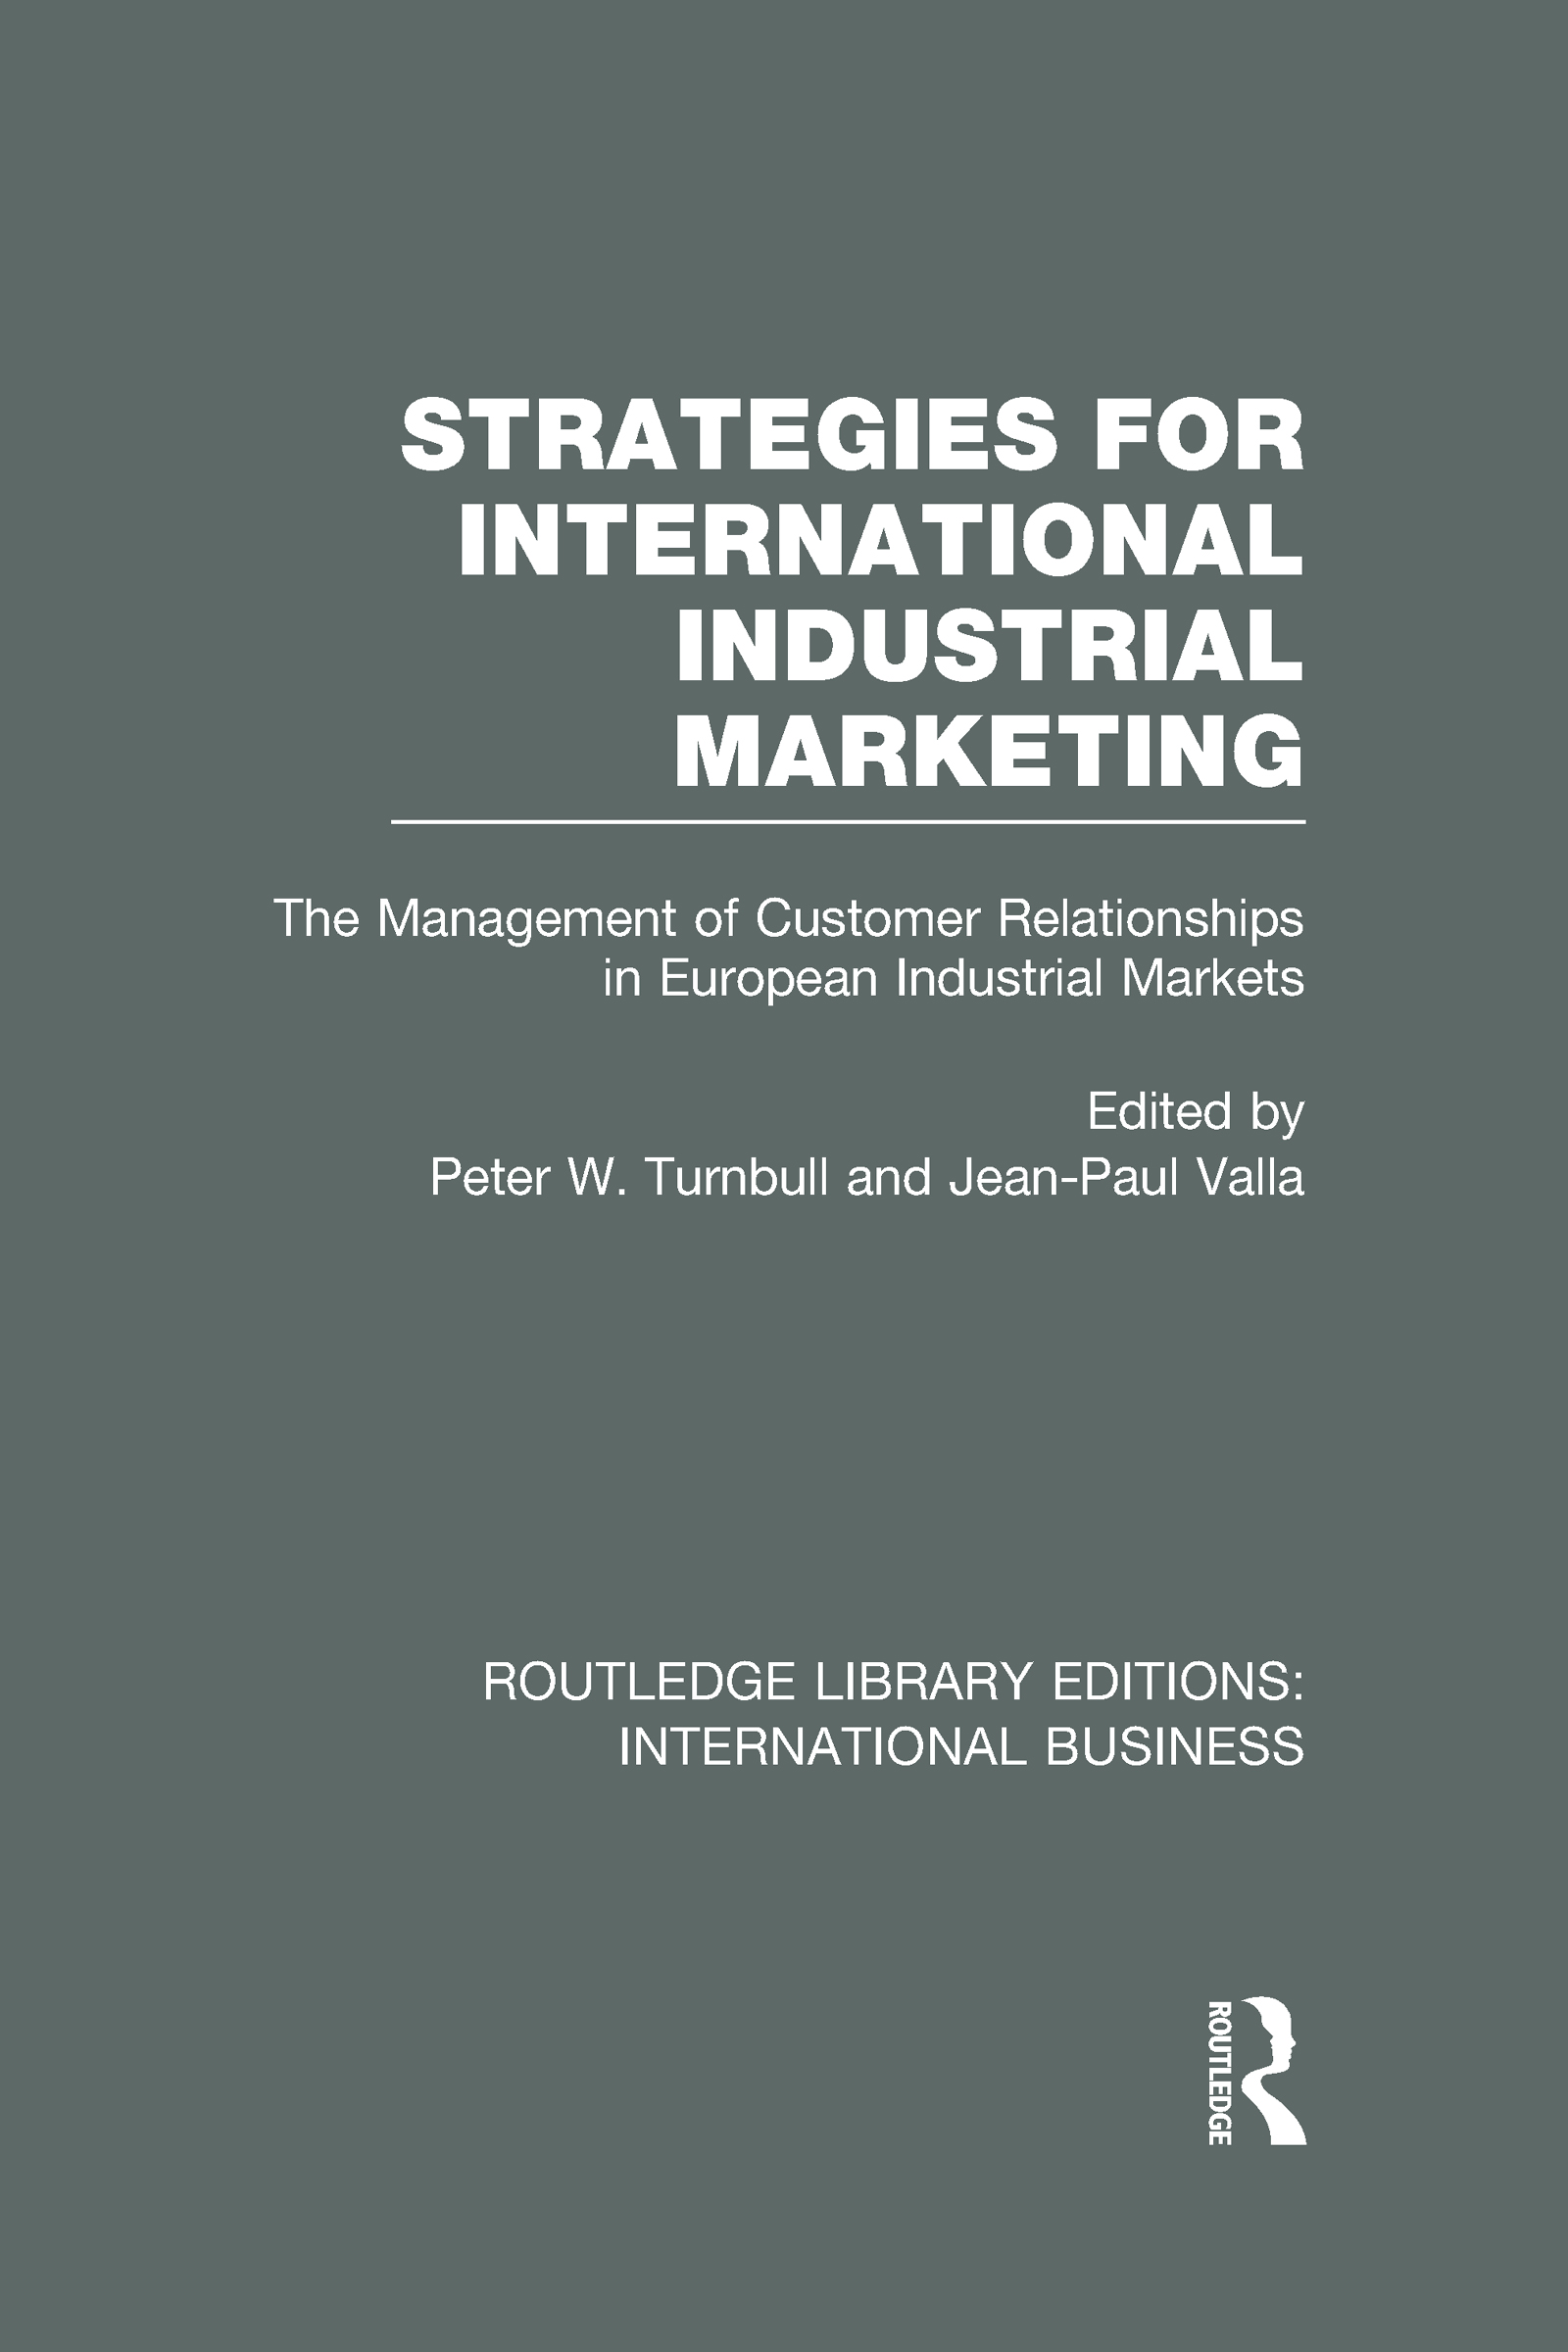 Strategies for International Industrial Marketing (RLE International Business): The Management of Customer Relationships in European Industrial Markets (Hardback) book cover